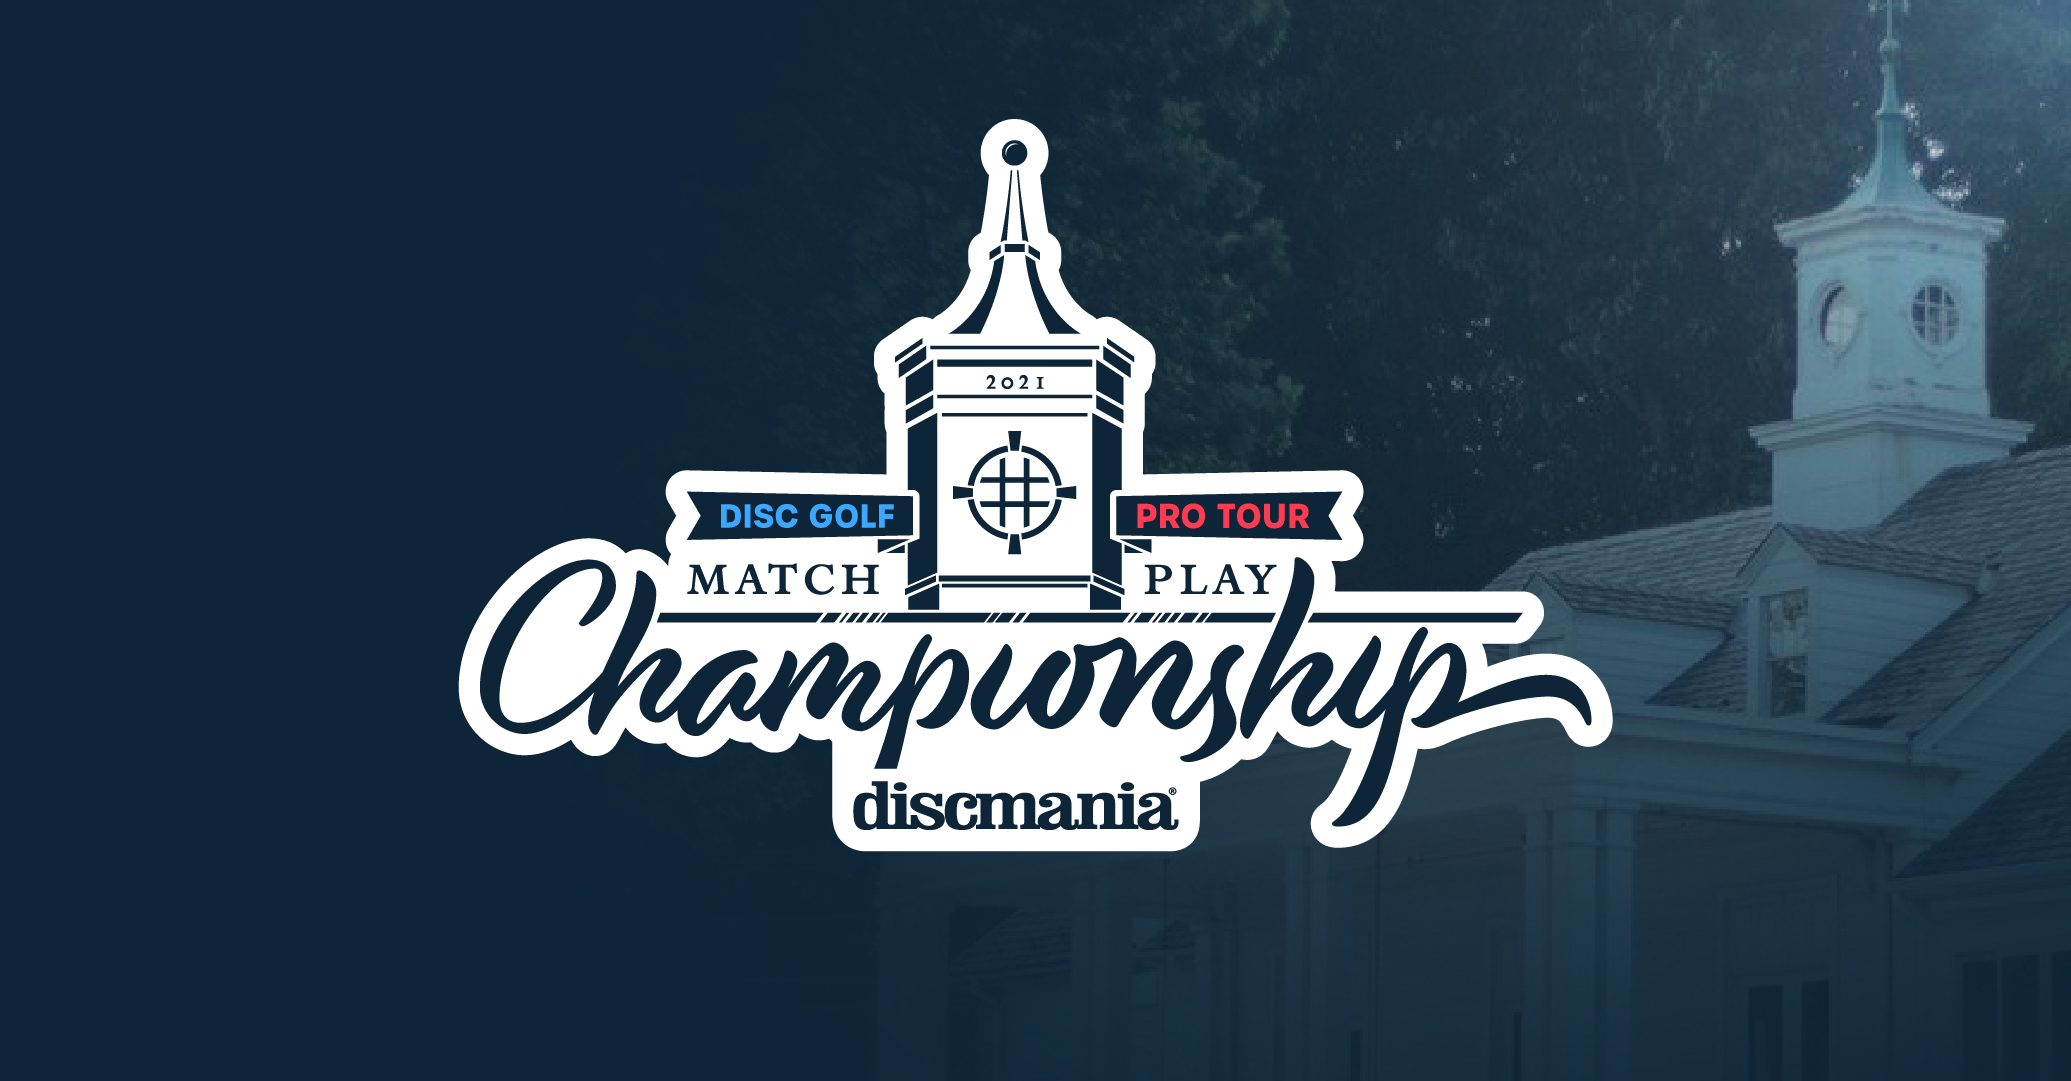 DISC GOLF PRO TOUR MATCH PLAY CHAMPIONSHIP – HOW TO FOLLOW